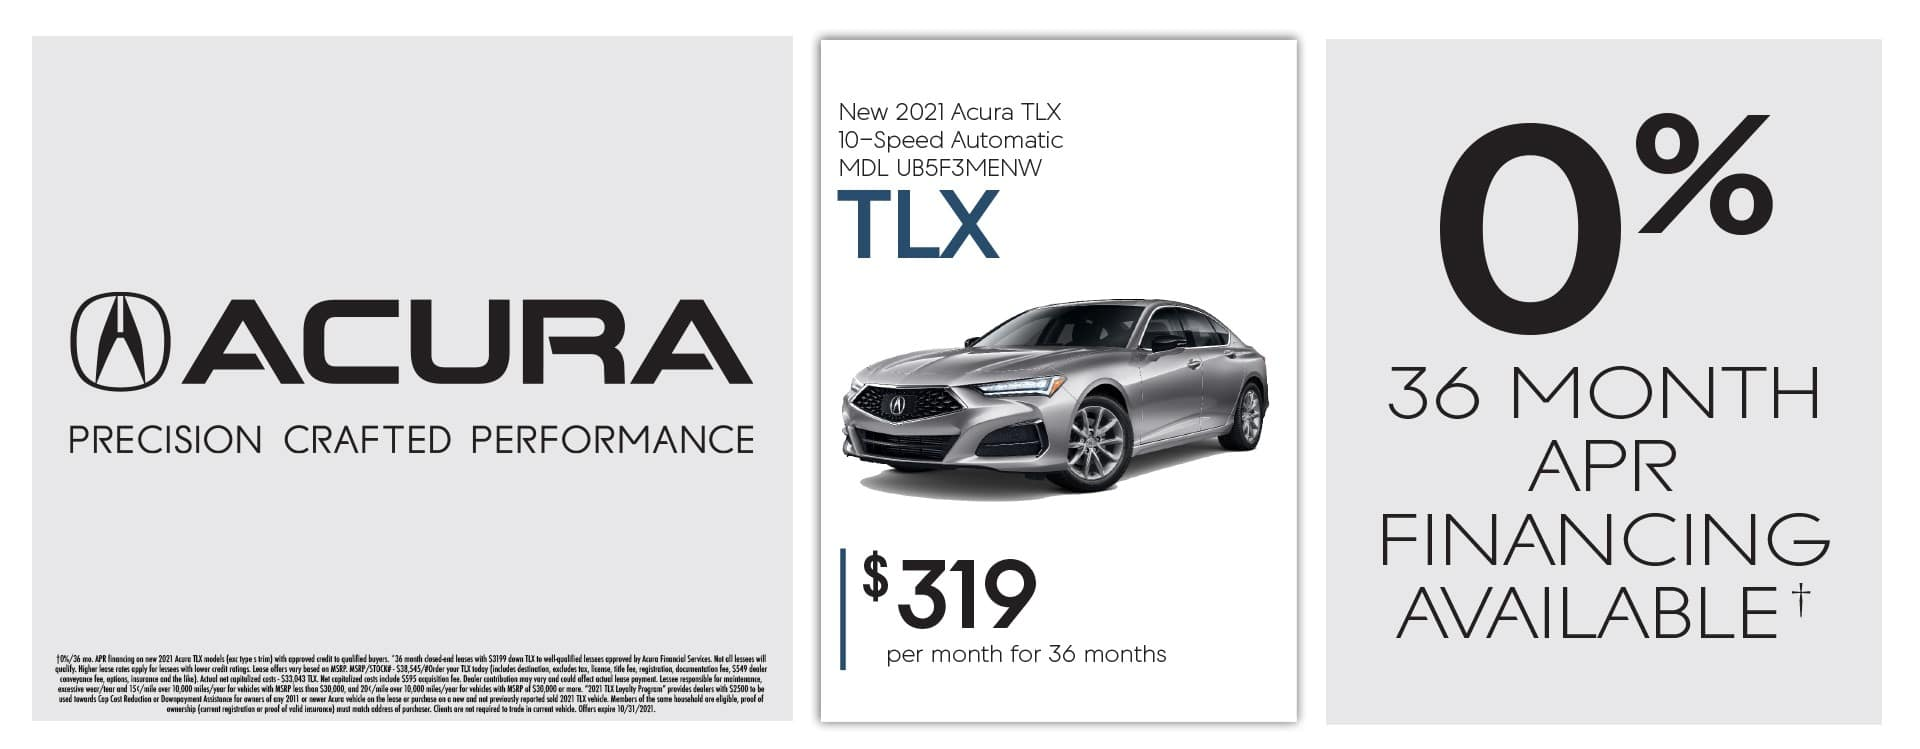 Acura Oct 2021 Home Banner